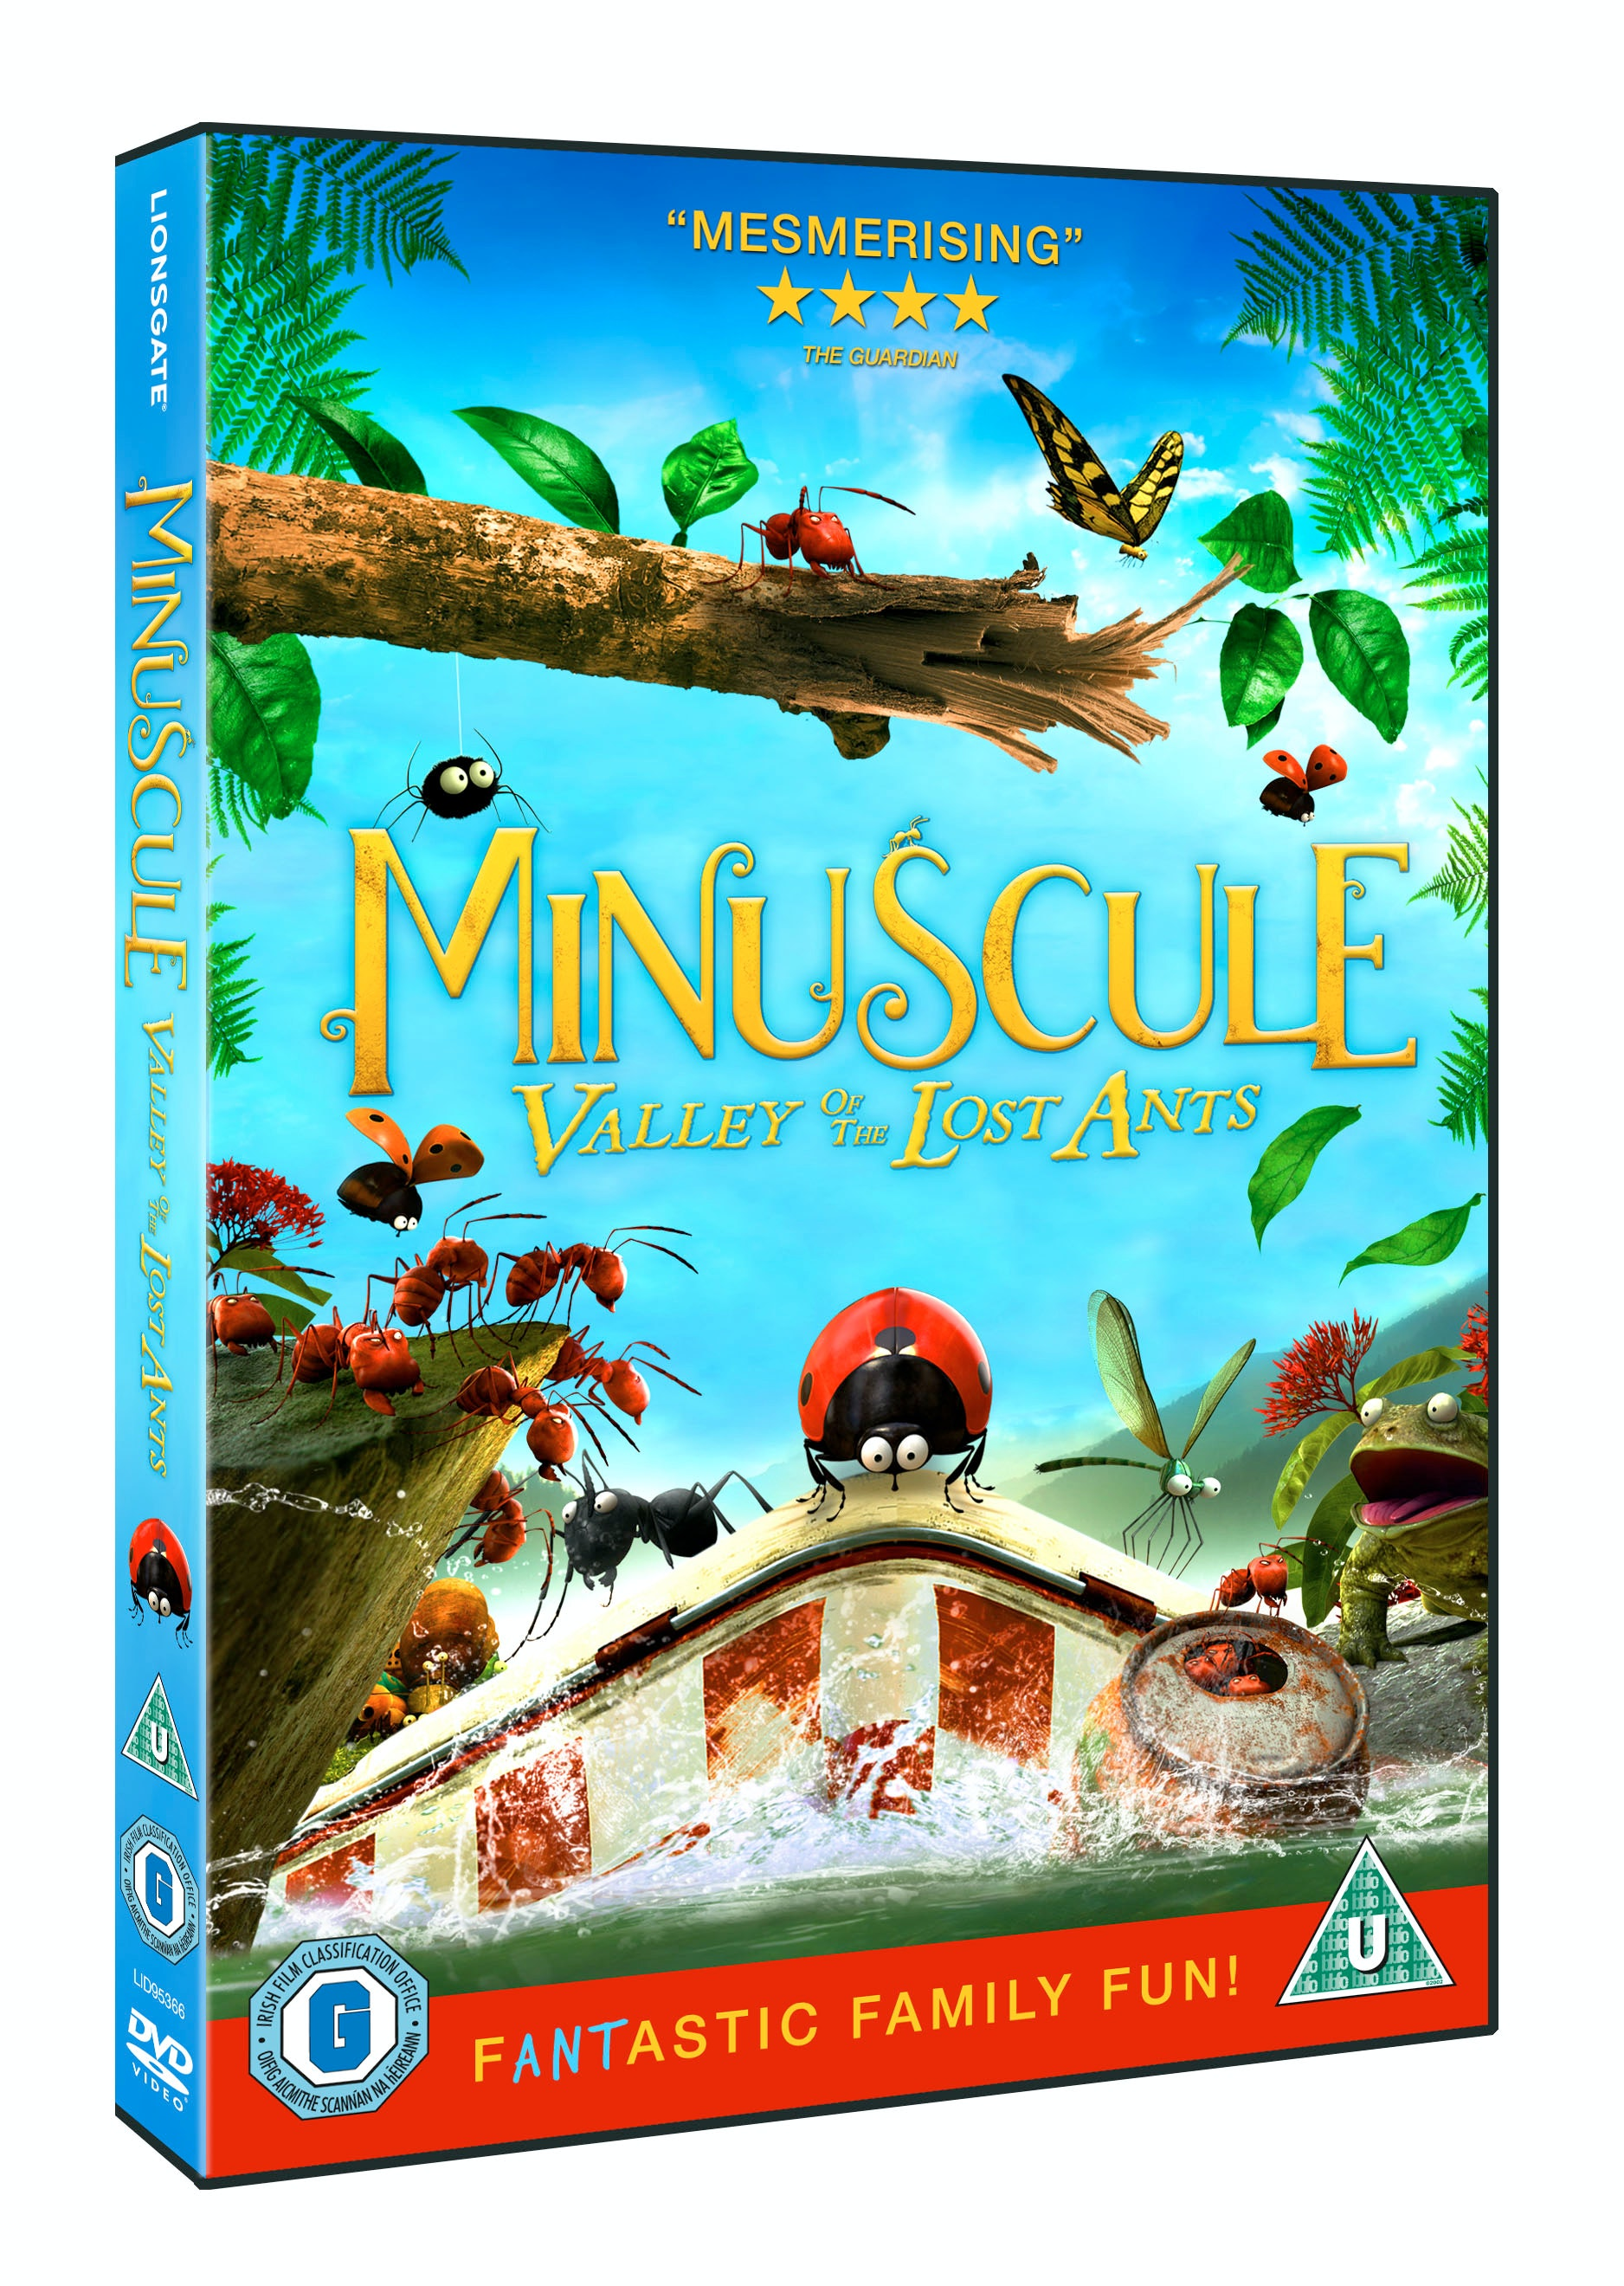 Miniscule 3d dvd  002  competition